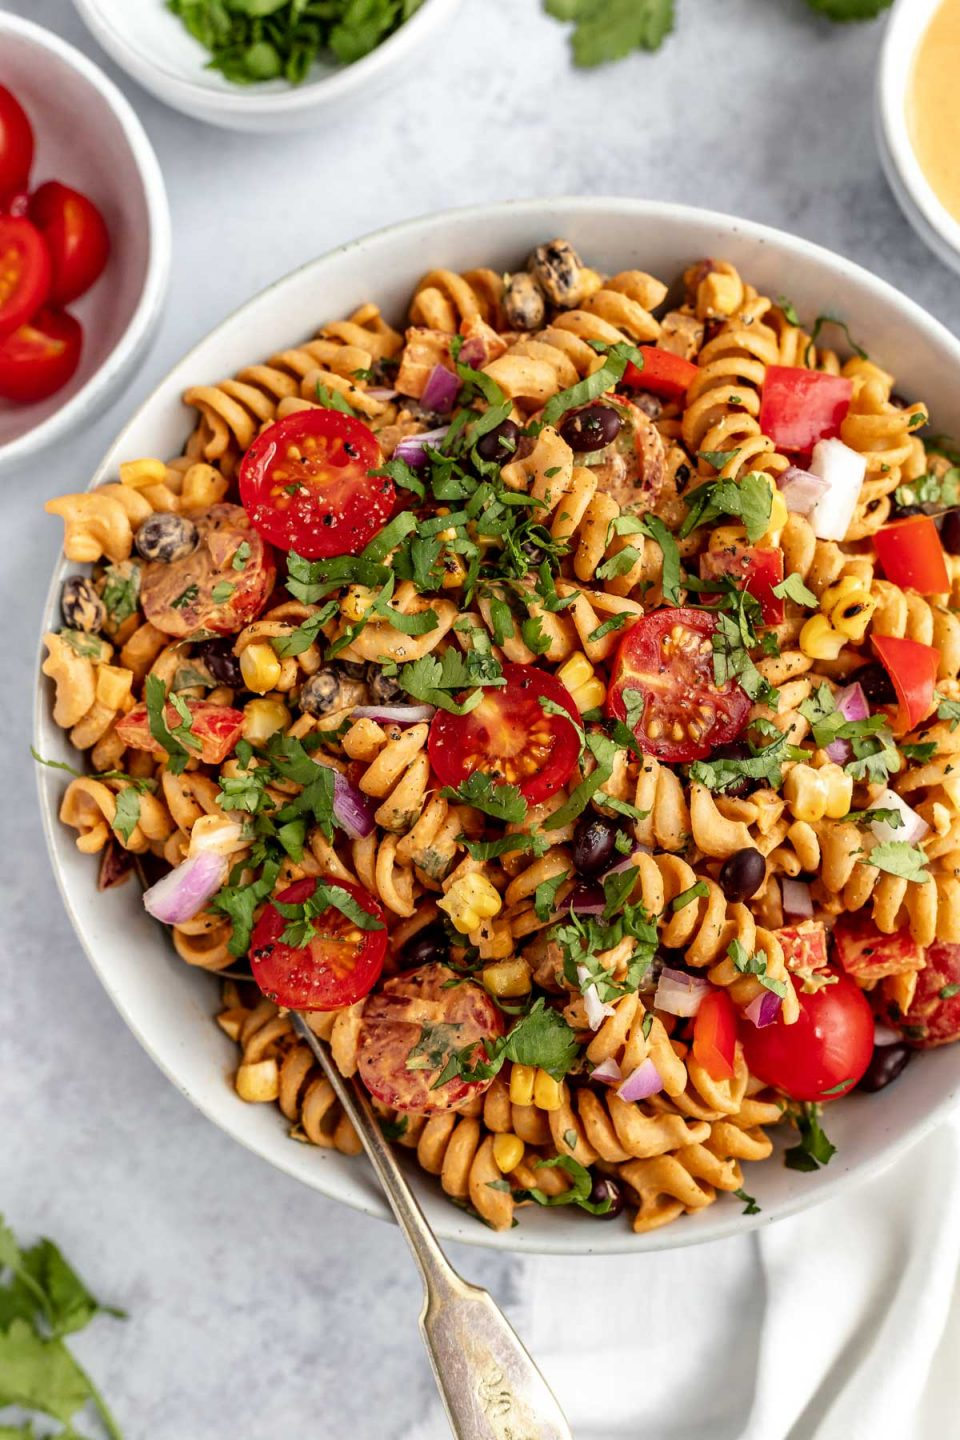 Creamy Vegan Southwest Pasta Salad shown in a large white serving bowl. The salad is garnished with freshly chopped cilantro. The bowl is placed on a light blue surface, surrounded with smaller white dishes filled with tomatoes, chopped cilantro, & creamy vegan southwest dressing.